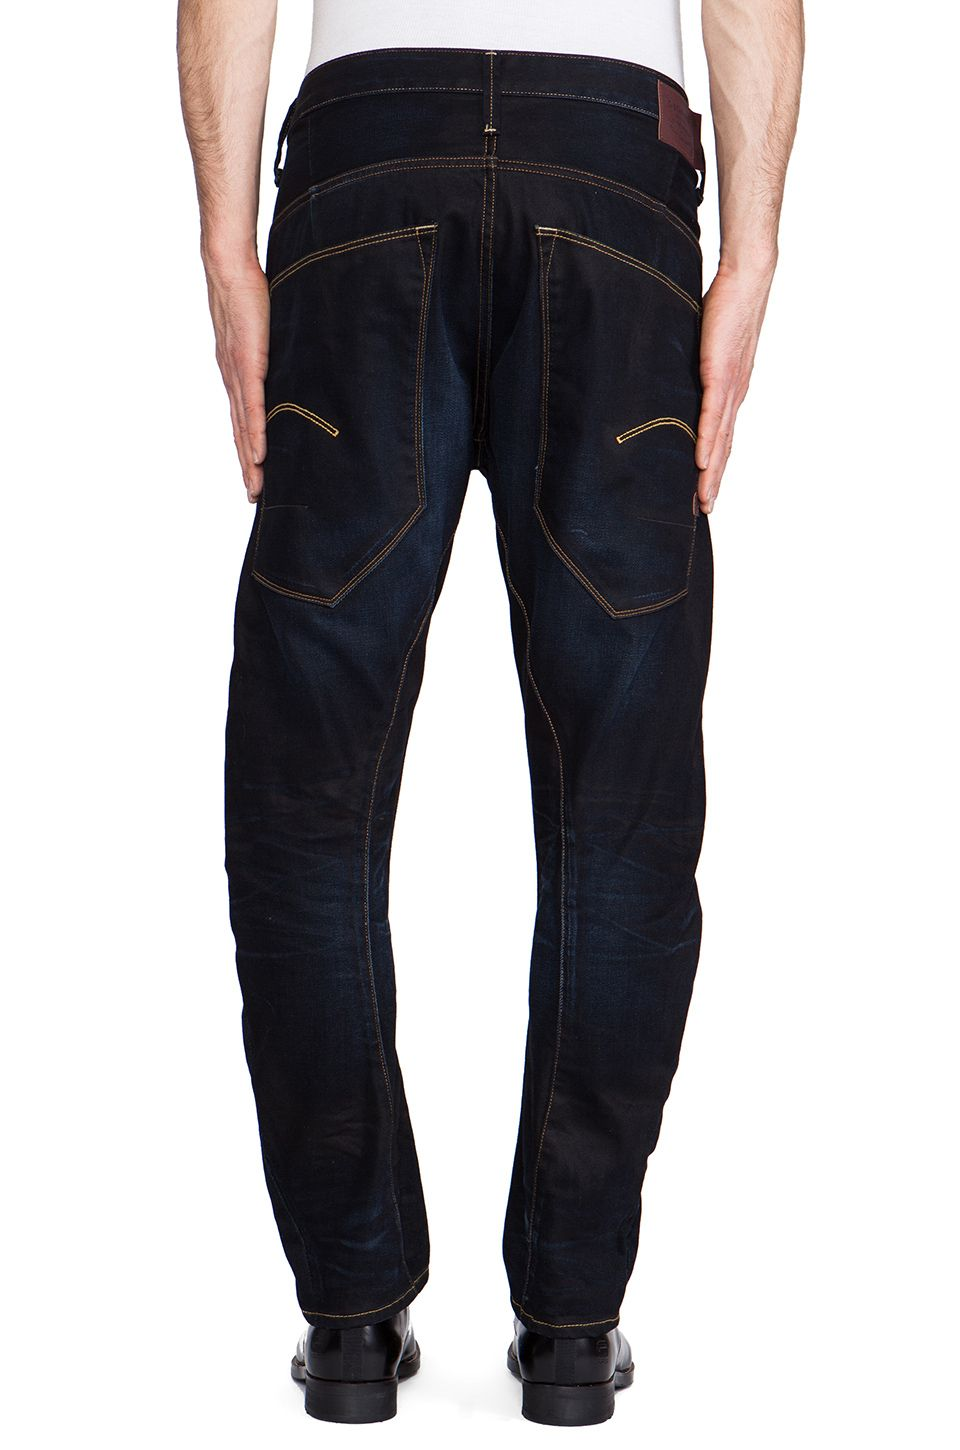 558ccf951d G-star raw Type C 3d Loose Tapered Lexicon Denim in Blue for Men (Indigo  Aged)